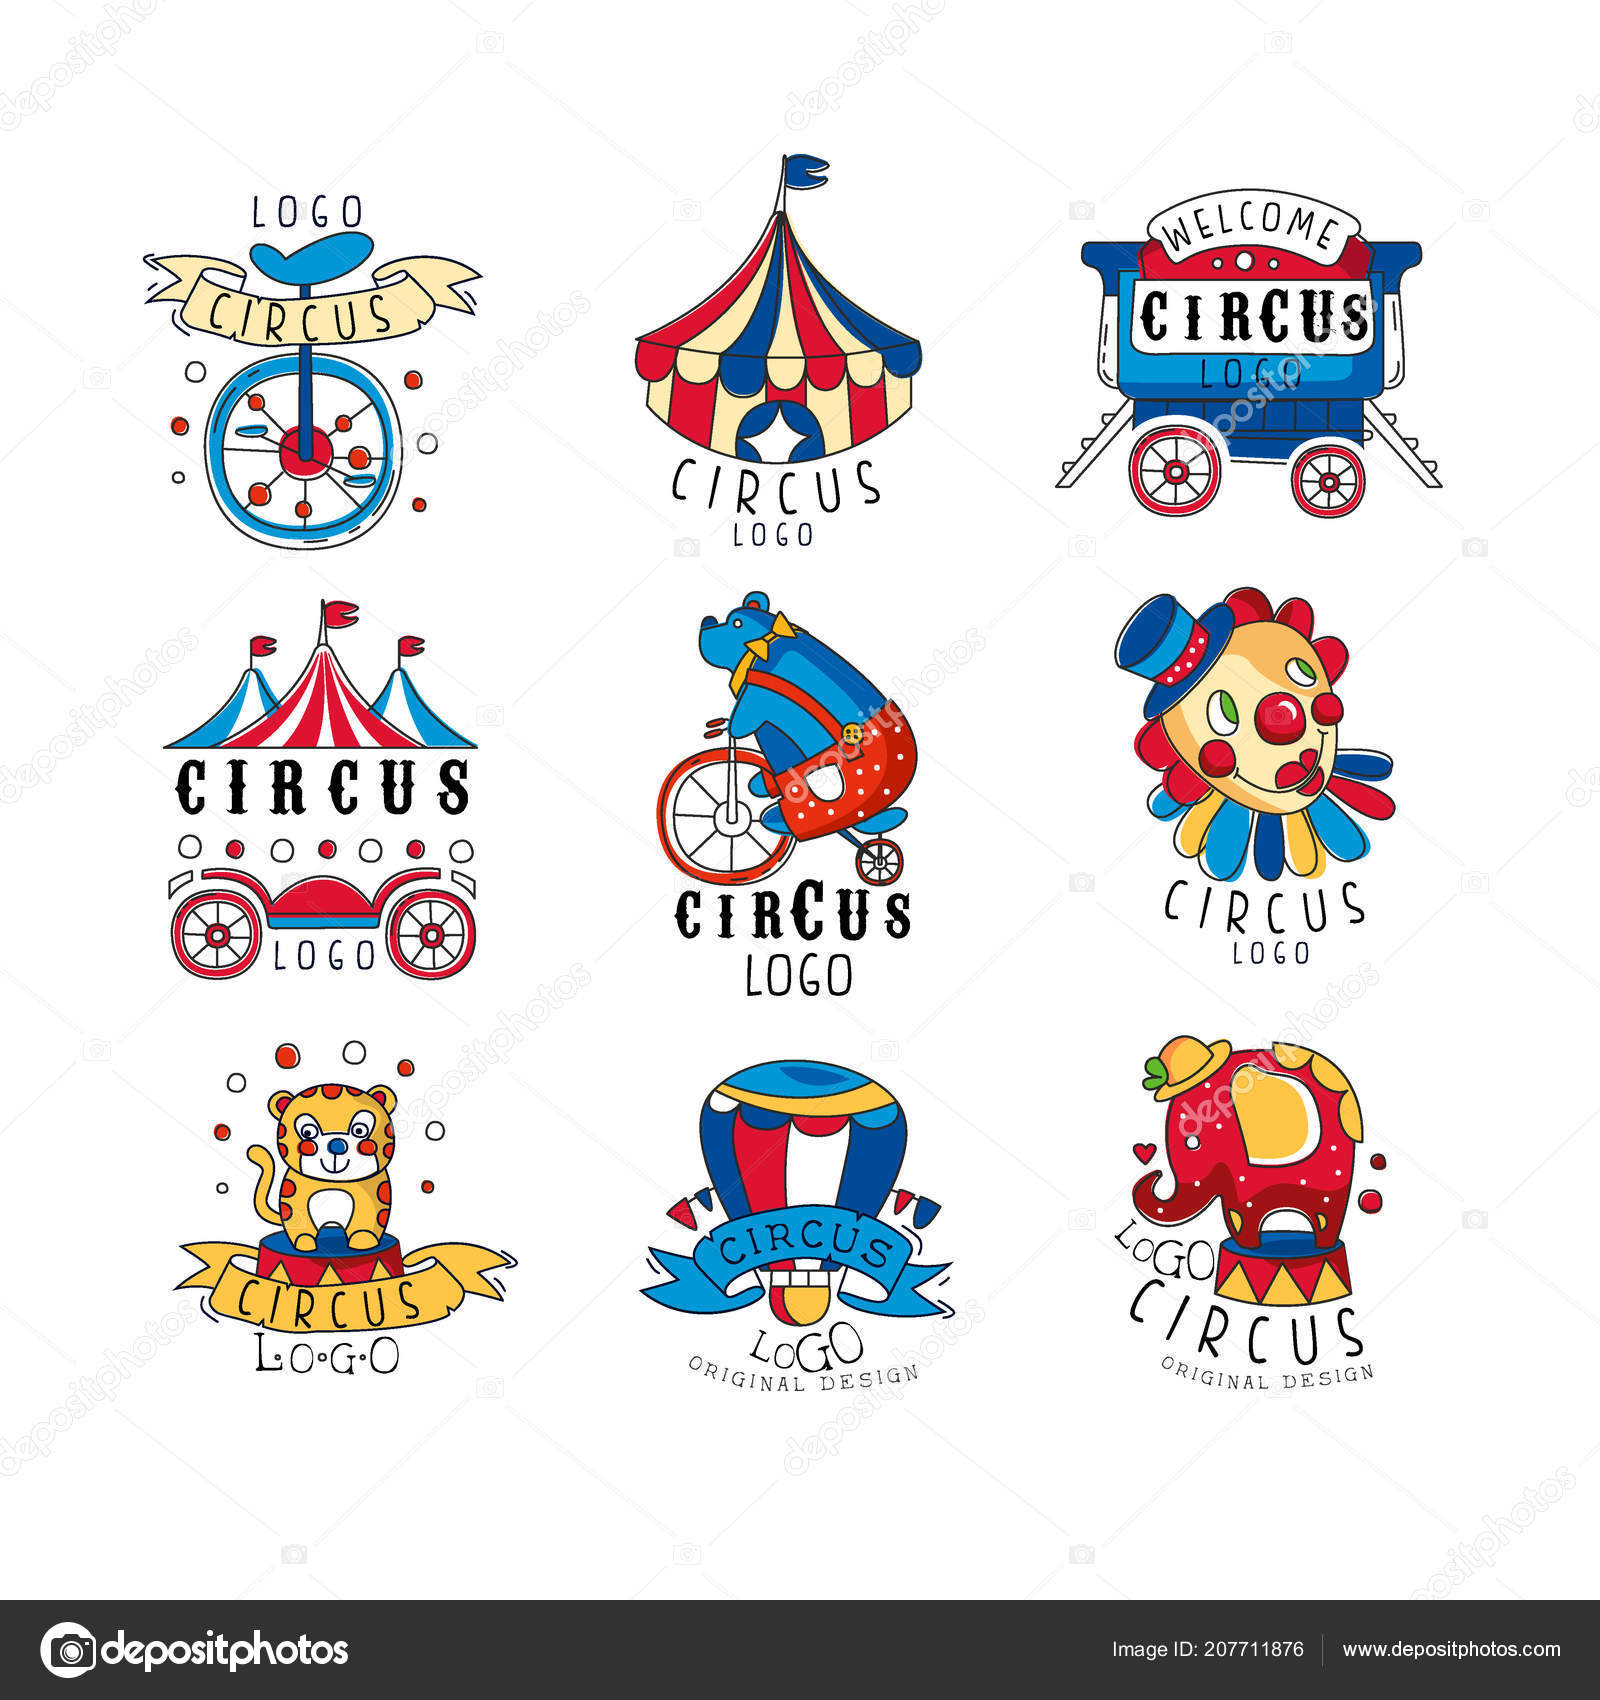 Circus Logo Design Set Colorful Emblems For Amusement Park Festival Party Creative Template Of Flyear Posters Cover Banner Invitation Hand Drawn Vector Illustrations On A White Background Stock Vector C Topvectors 207711876